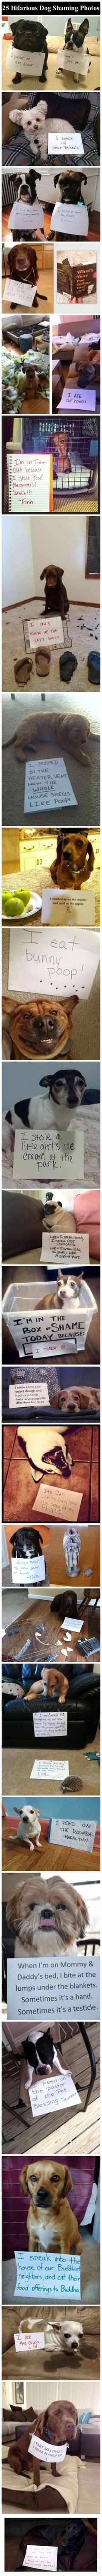 25 Hilarious Dog Shaming Photos Pictures, Photos, and Images for Facebook, Tumblr, Pinterest, and Twitter #funnypictures #dogsfunnyhumor